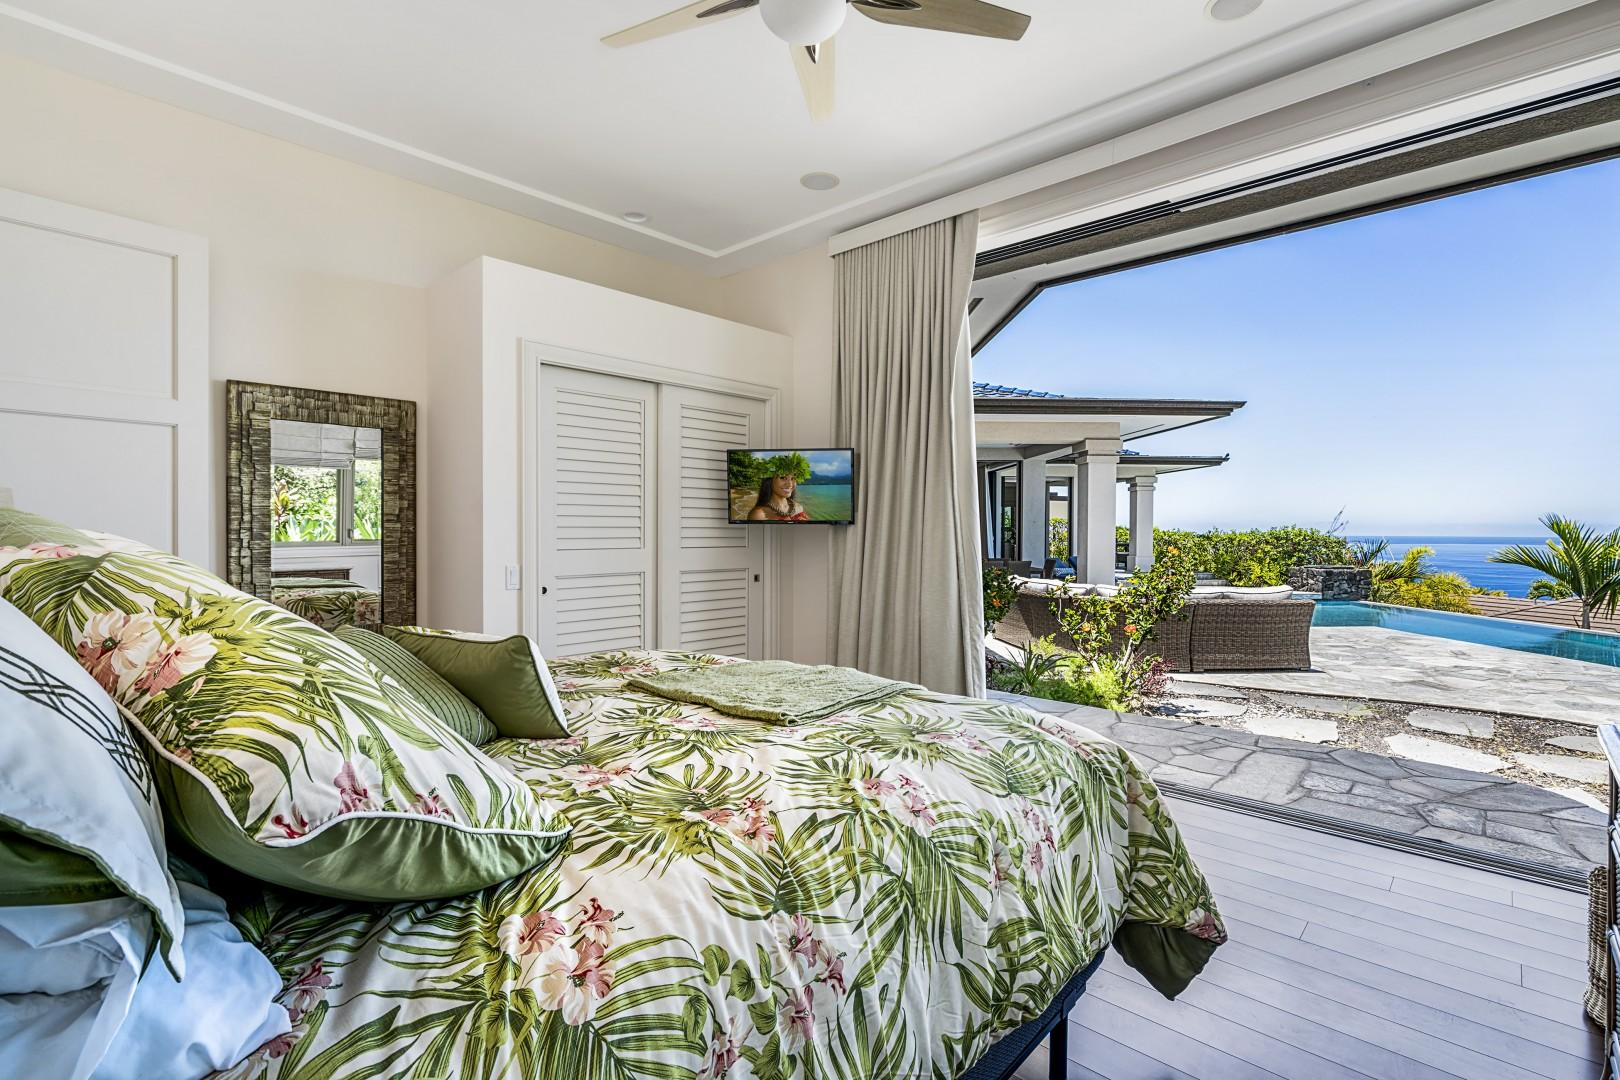 Second Master featuring King bed, Lanai access, and Smart TV!